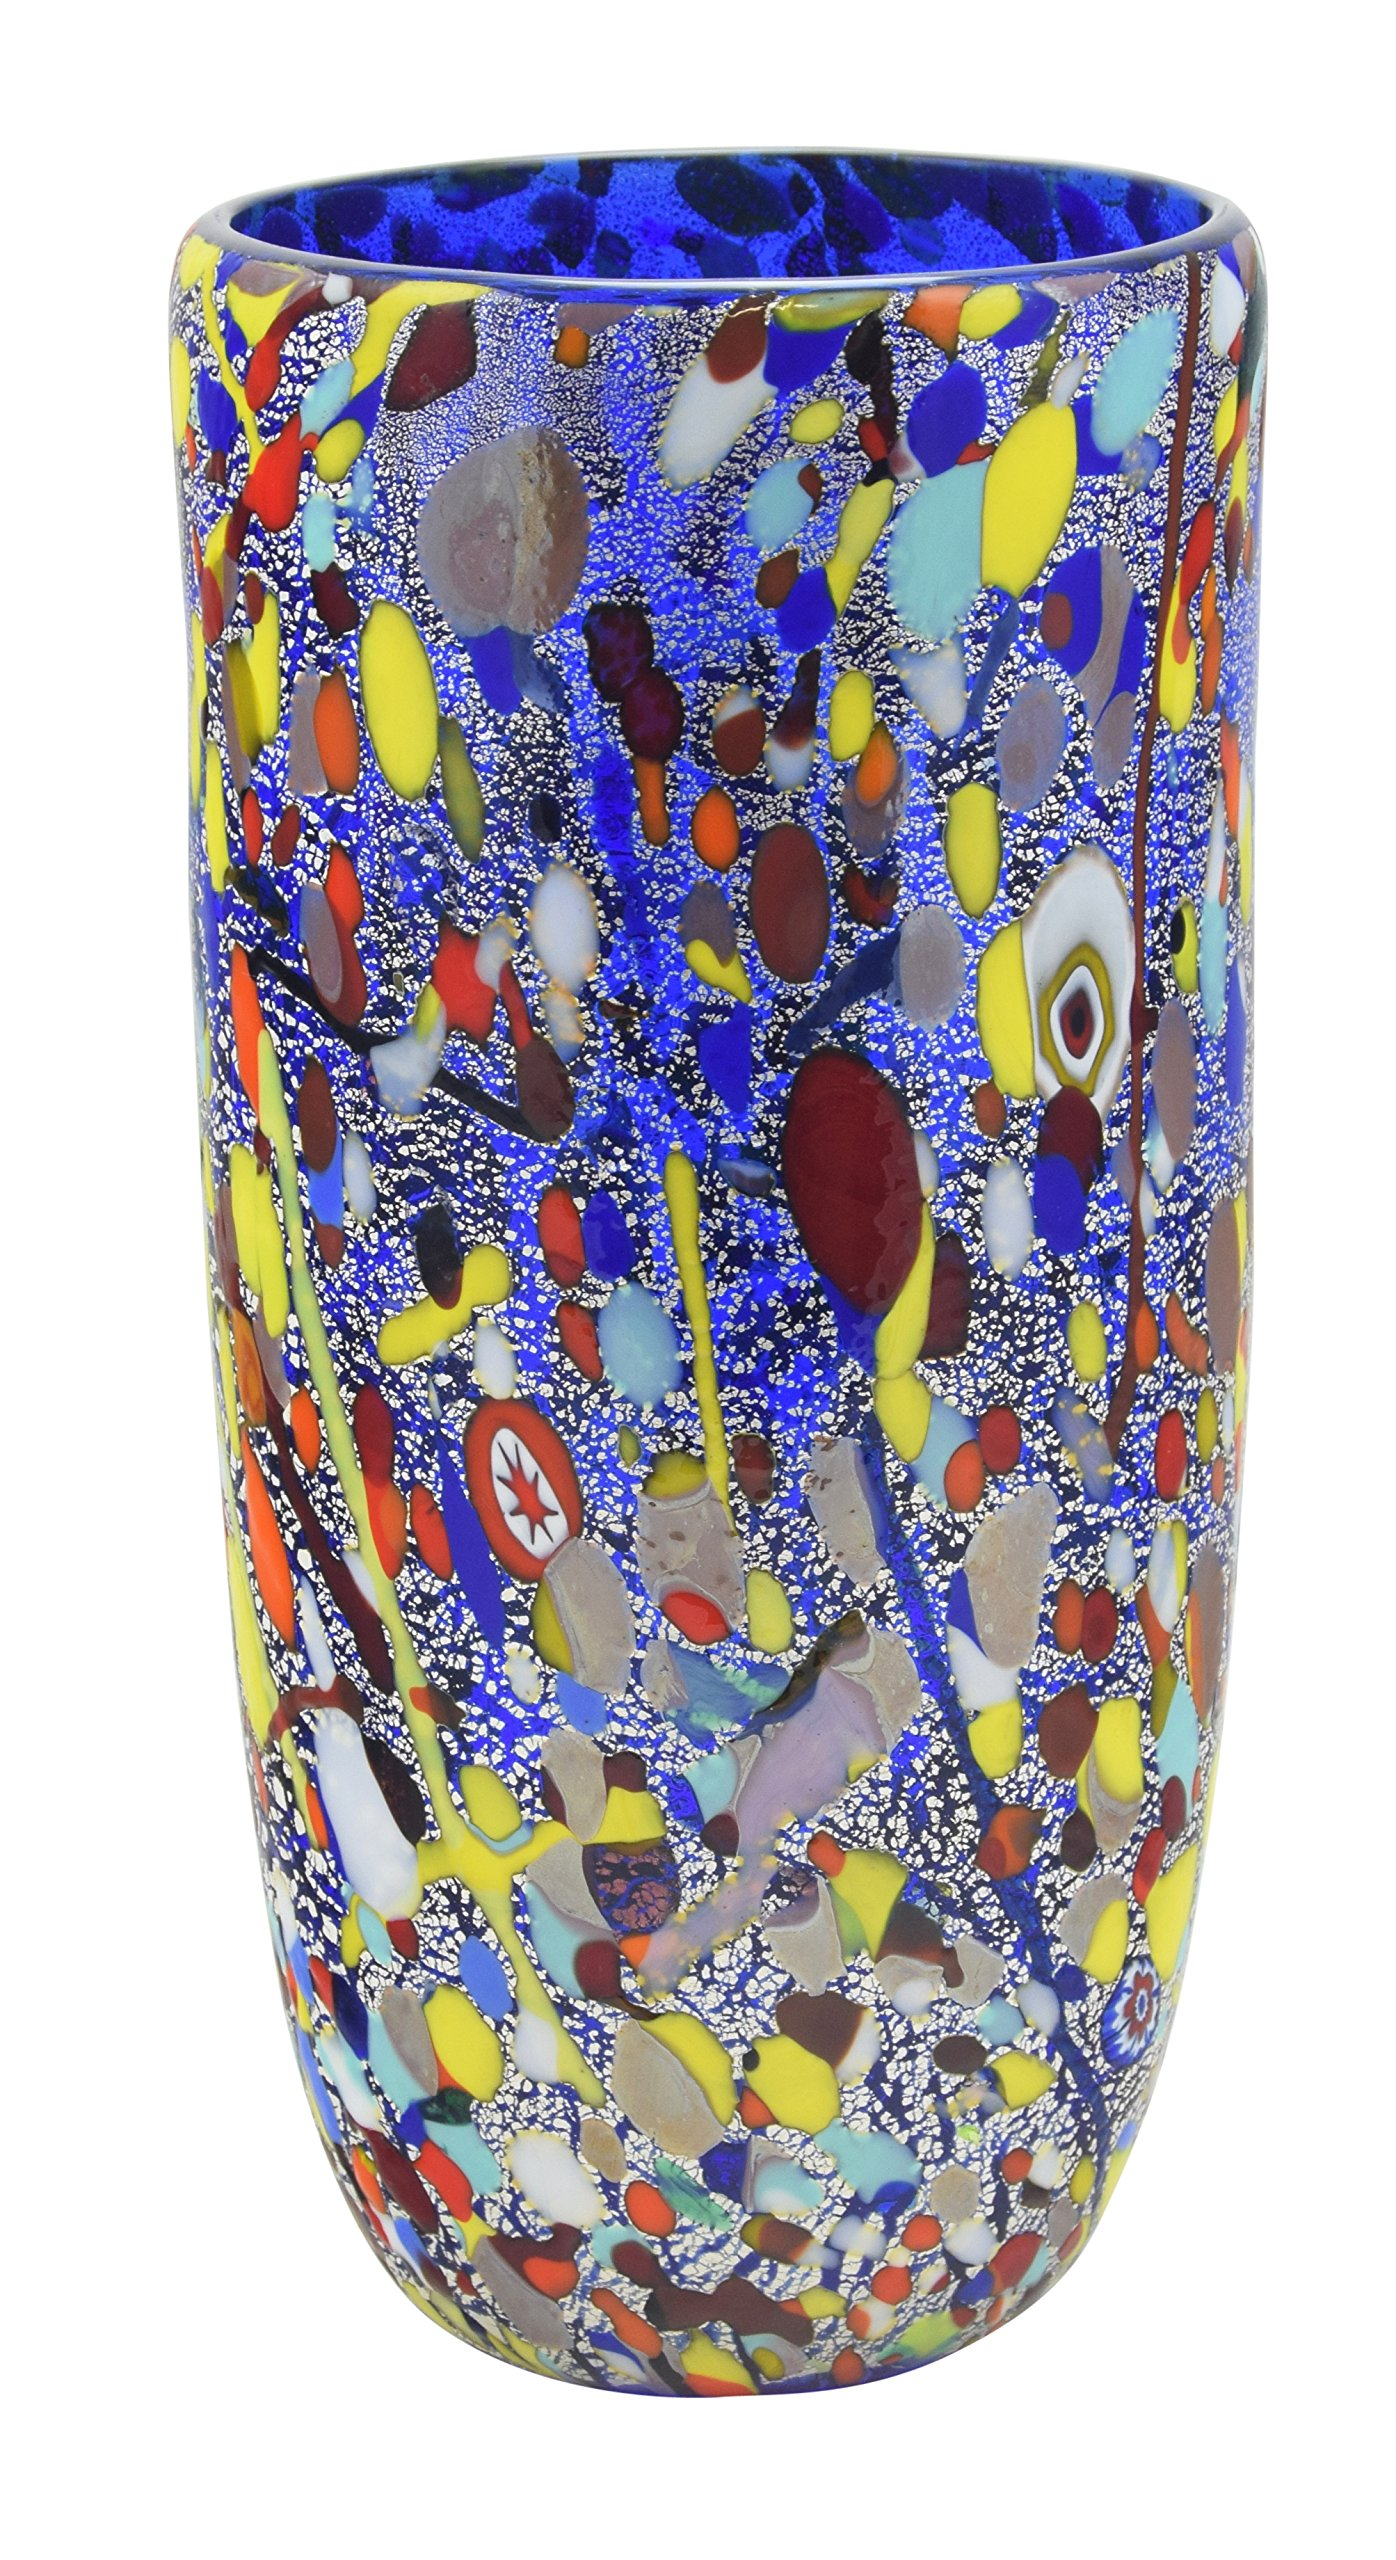 VASO CONICO ARLECCHINO Murano Glass Gold Leaf Murrine Vase Decor Venice Made Italy by Boteghe - Real Made in Italy